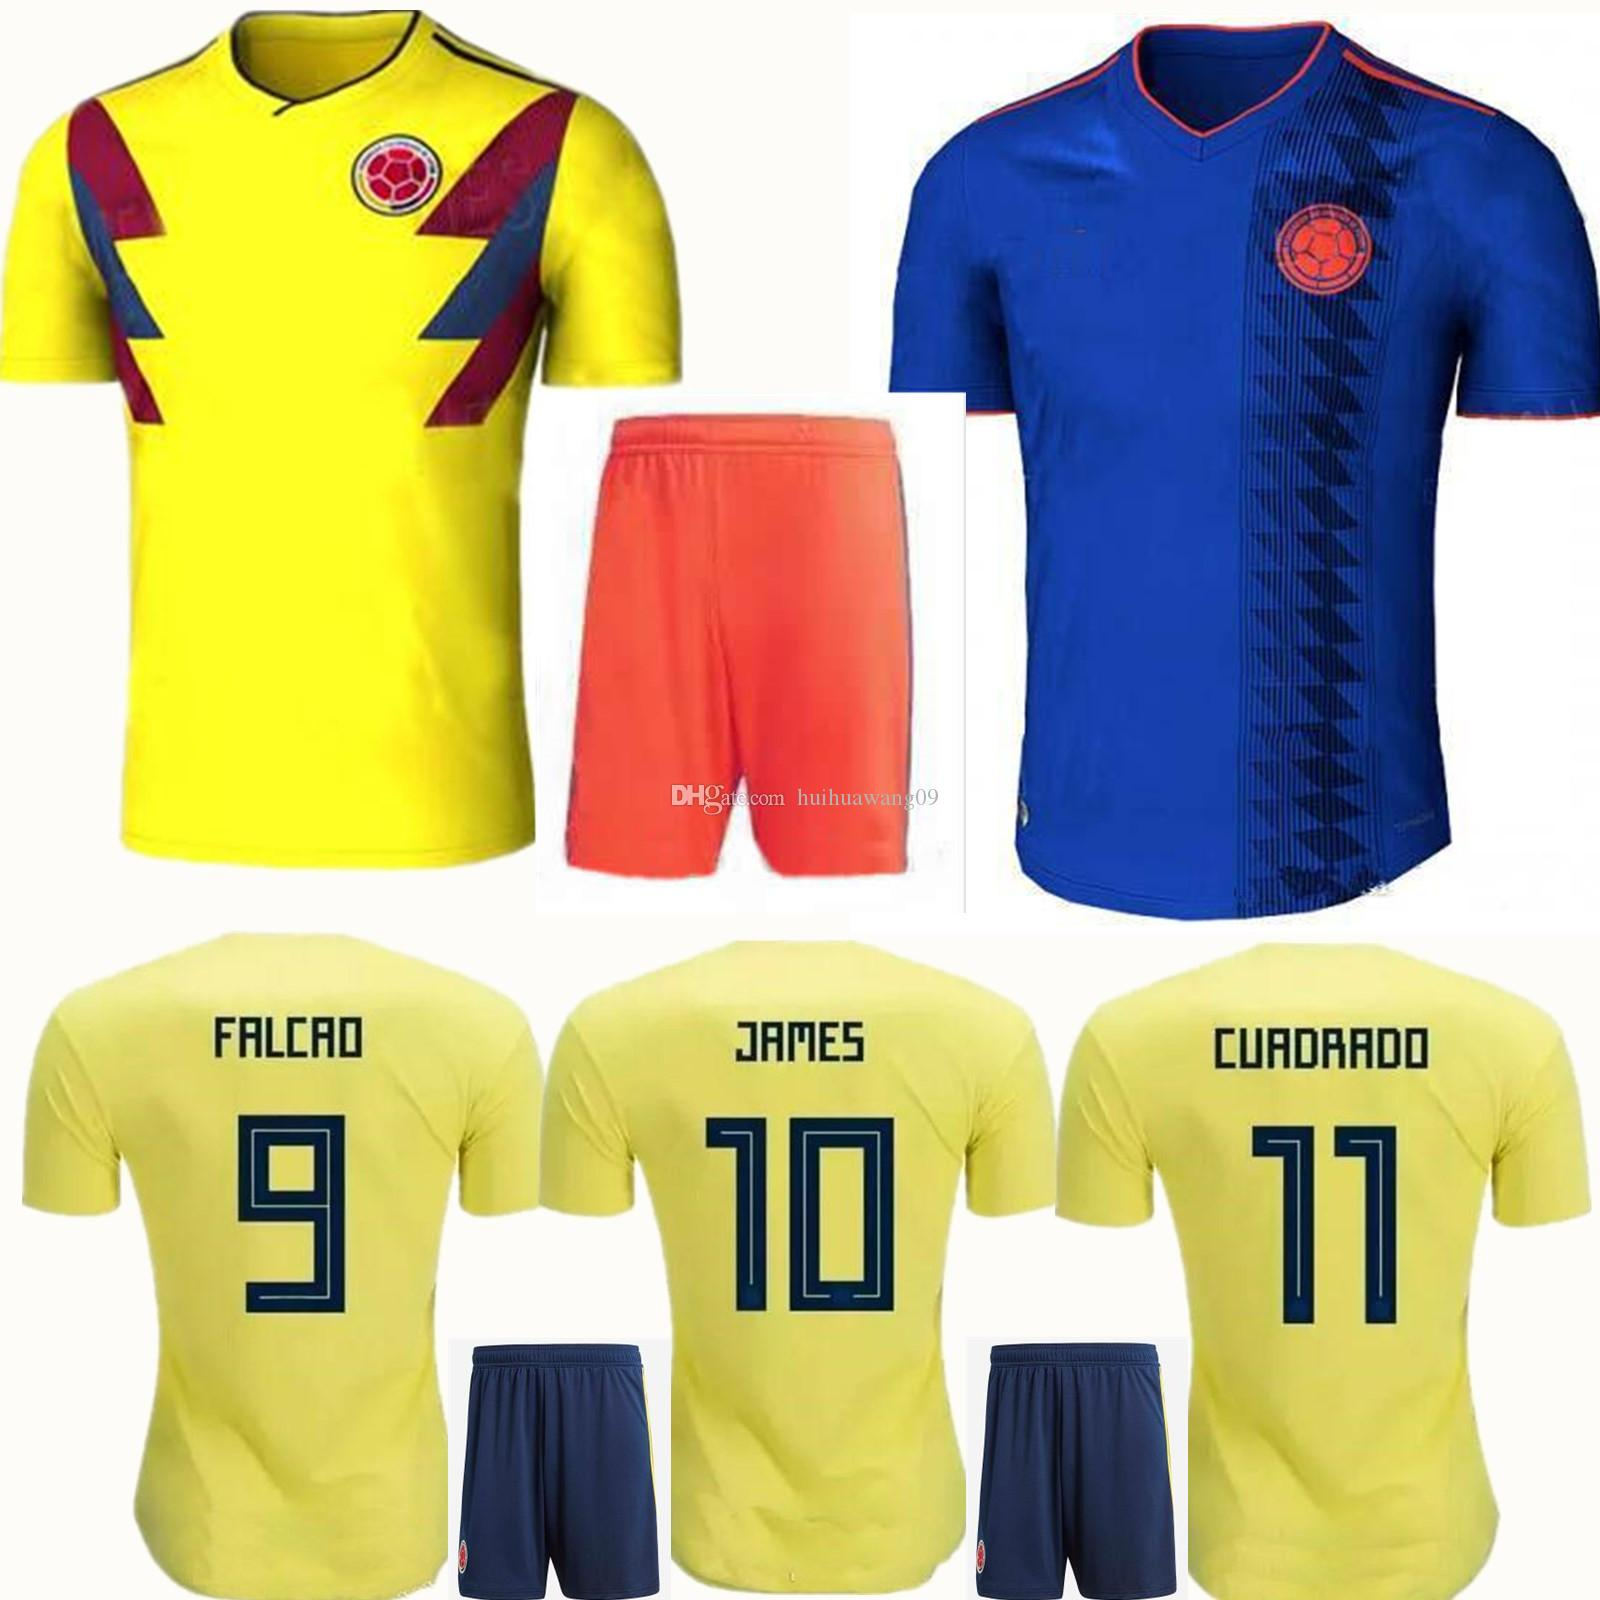 Adults 2018 World Cup Colombia Soccer Sets Rodriguez James Falcao Cuadrado  TEO BACCA SANCHEZ Home Away Kit Colombia Jersey Football Uniform Camisetas  De ...